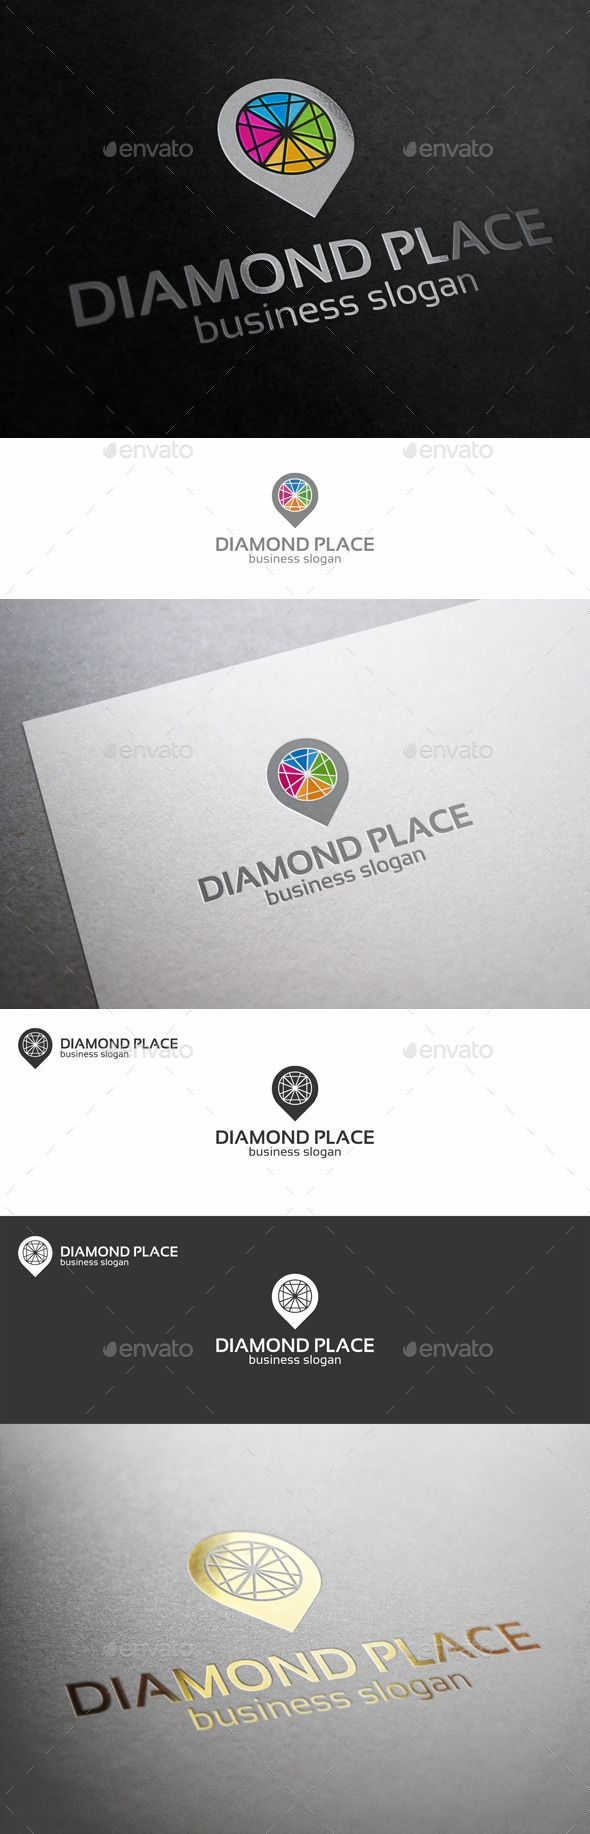 Diamond Point Place Locator Logo Template – Excellent logo in vector format for diamond shop logo, diamond manufacturing industry, jewelry market logo, sell jewelry, bijouterie shops, e-shops, online shop, e-market, tv shop, shopping tv, online shopping, e-store, retail businesses, holiday gift, gifts service, souvenir business, shopping stores, tech support, and related companies. You can easily change the text. You can freely experiment with color.